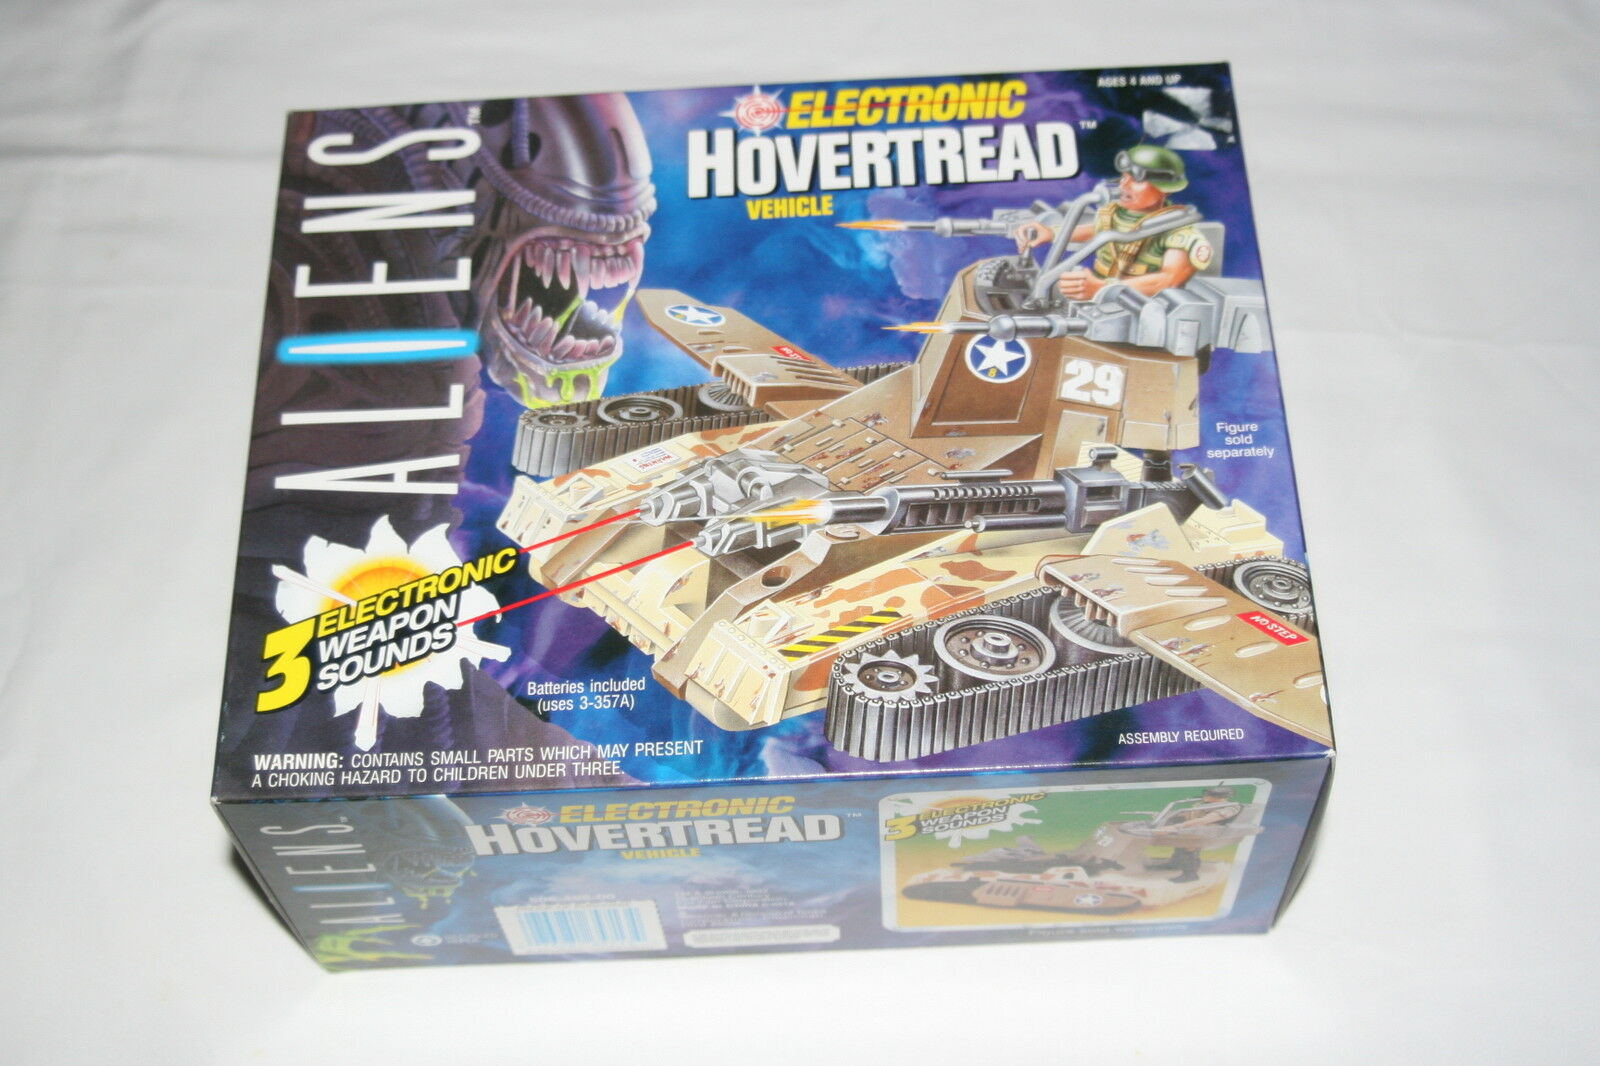 1992 Kenner Toys Aliens Space Marine Electronic Hogreenread Vehicle